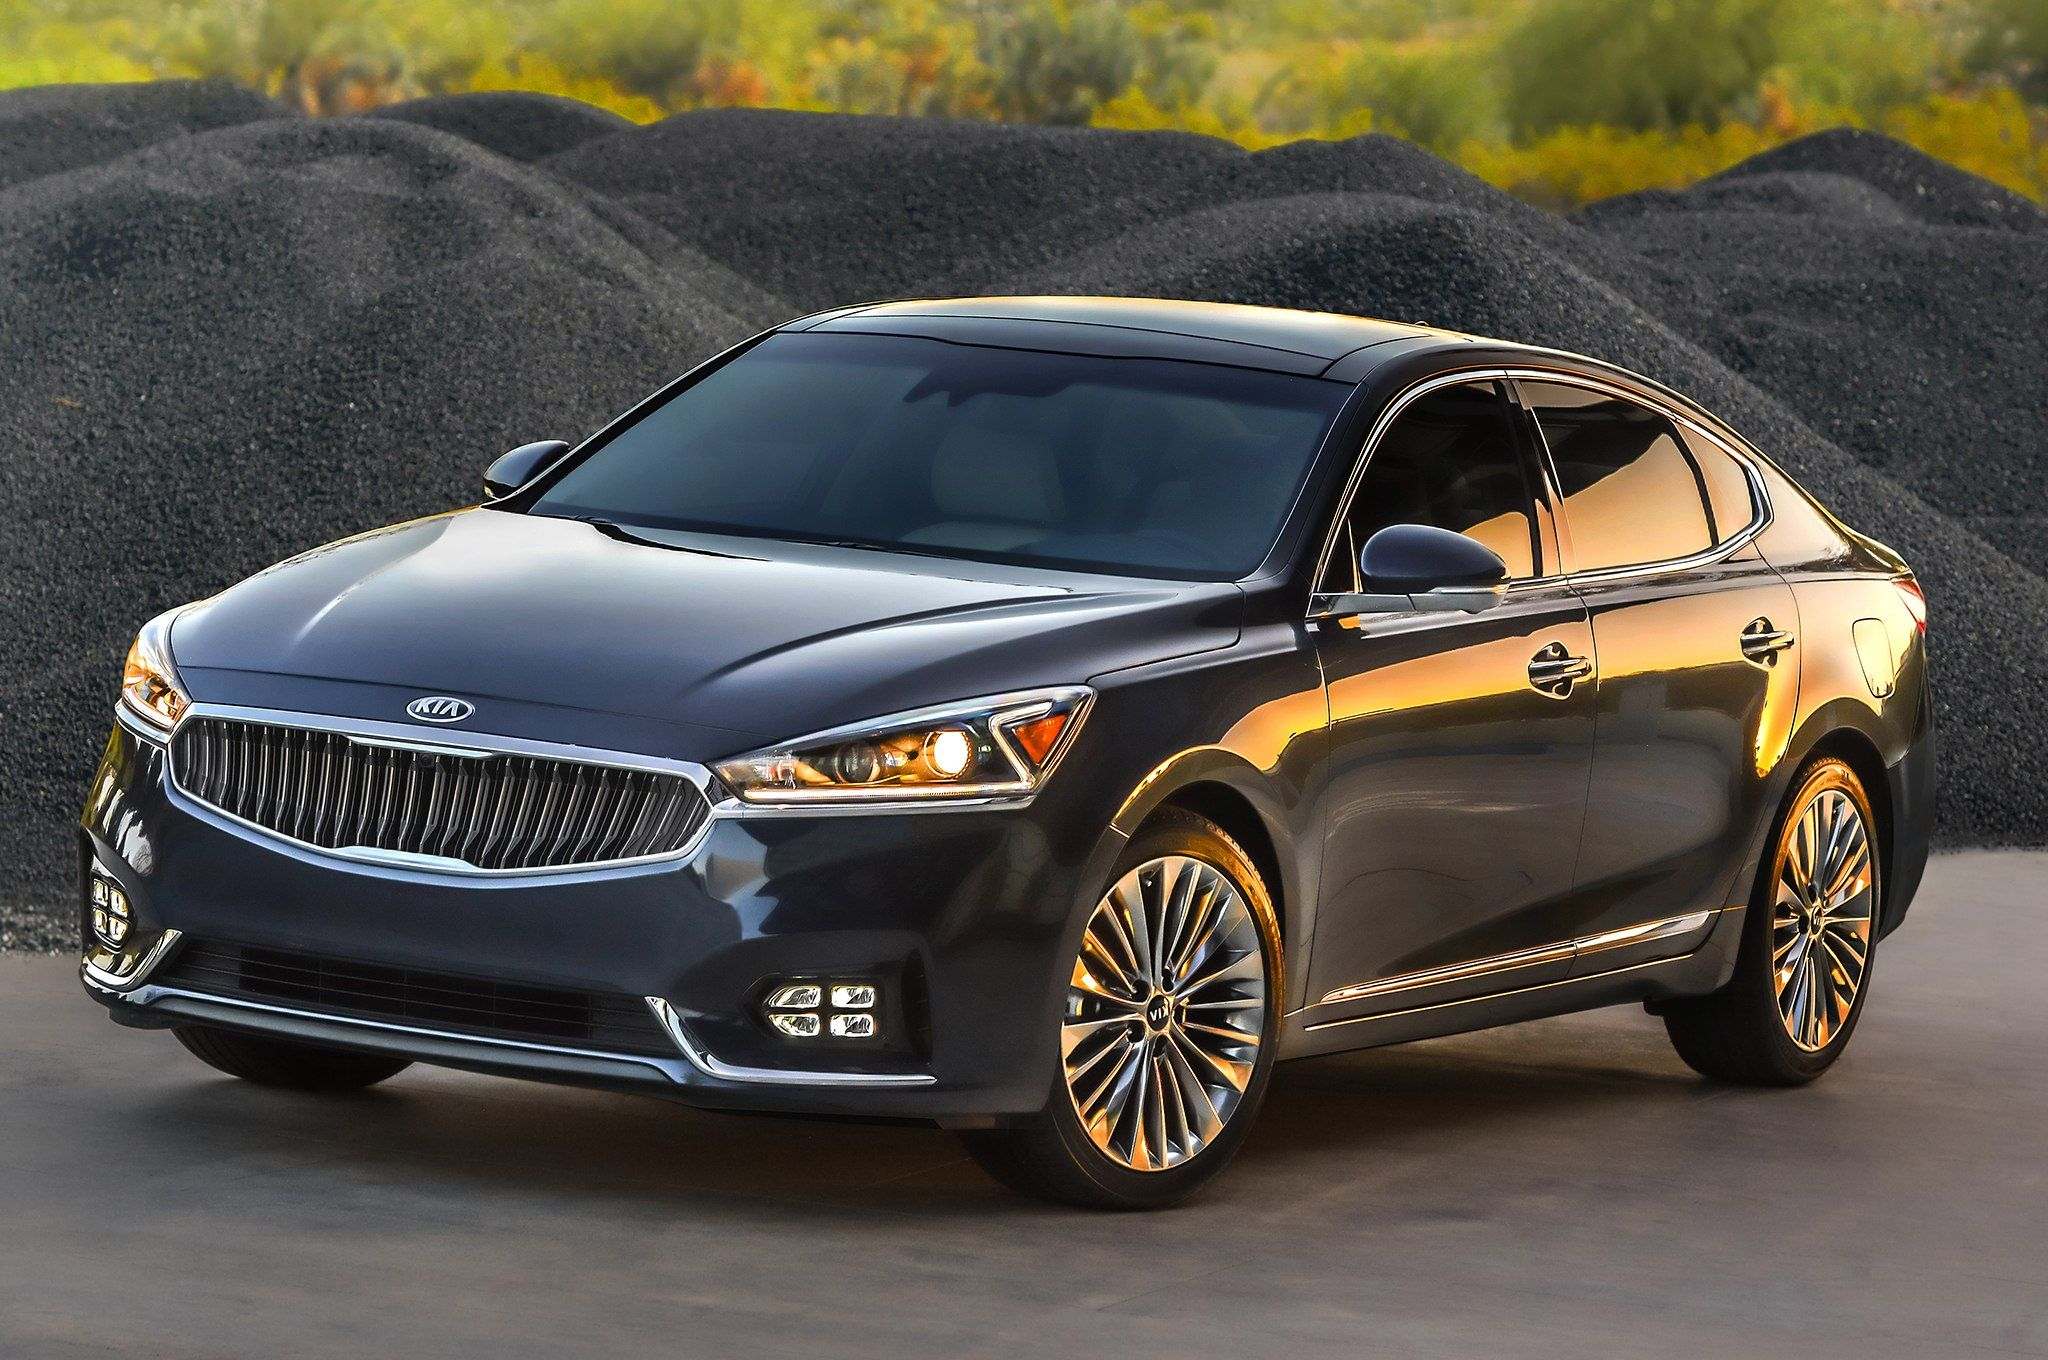 83 New 2020 All Kia Cadenza Wallpaper